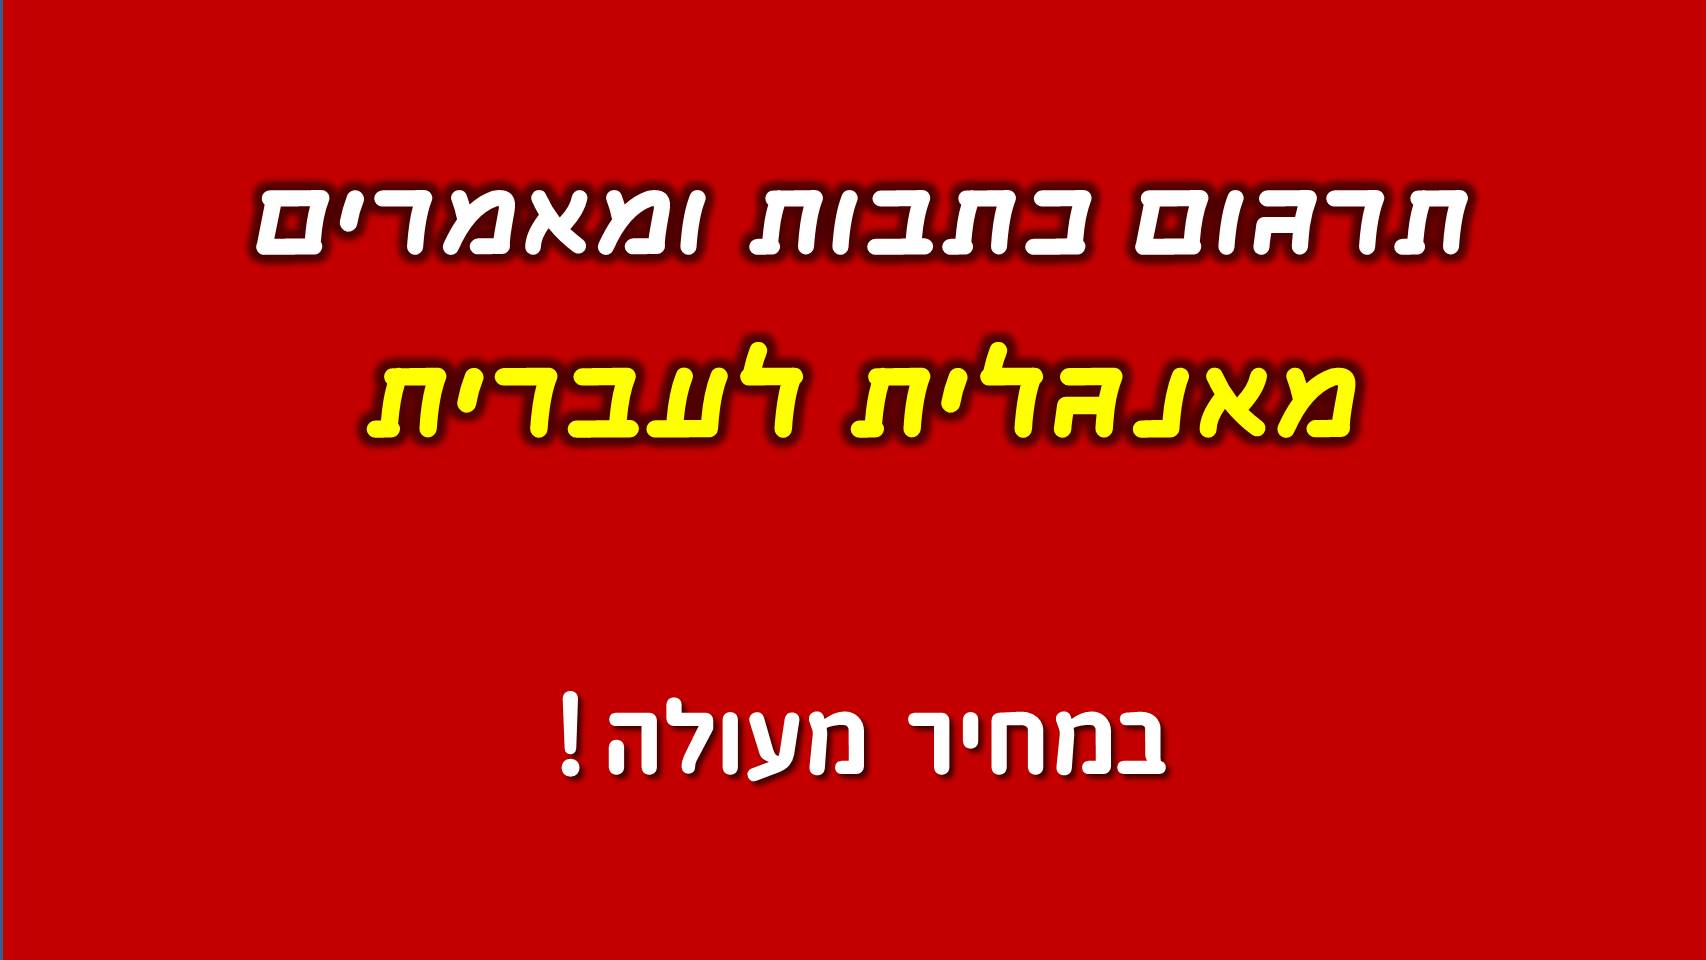 Translate articles from English to Hebrew